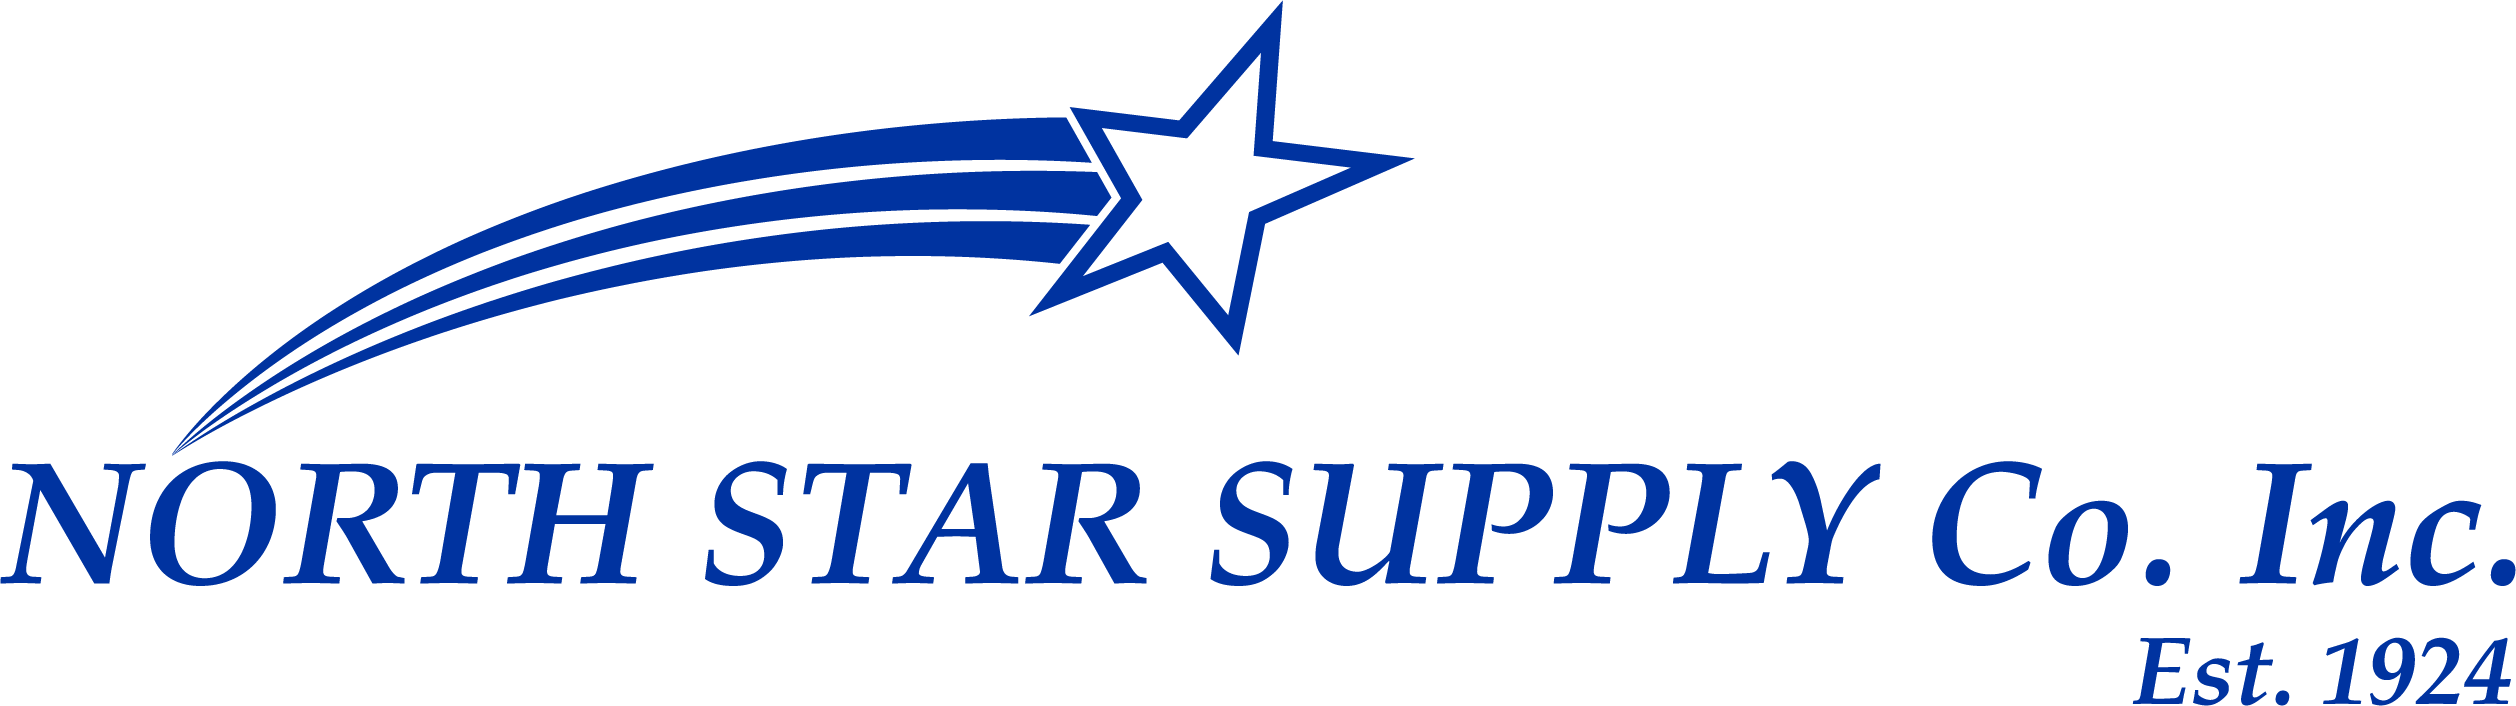 North Star Supply Co. Inc.